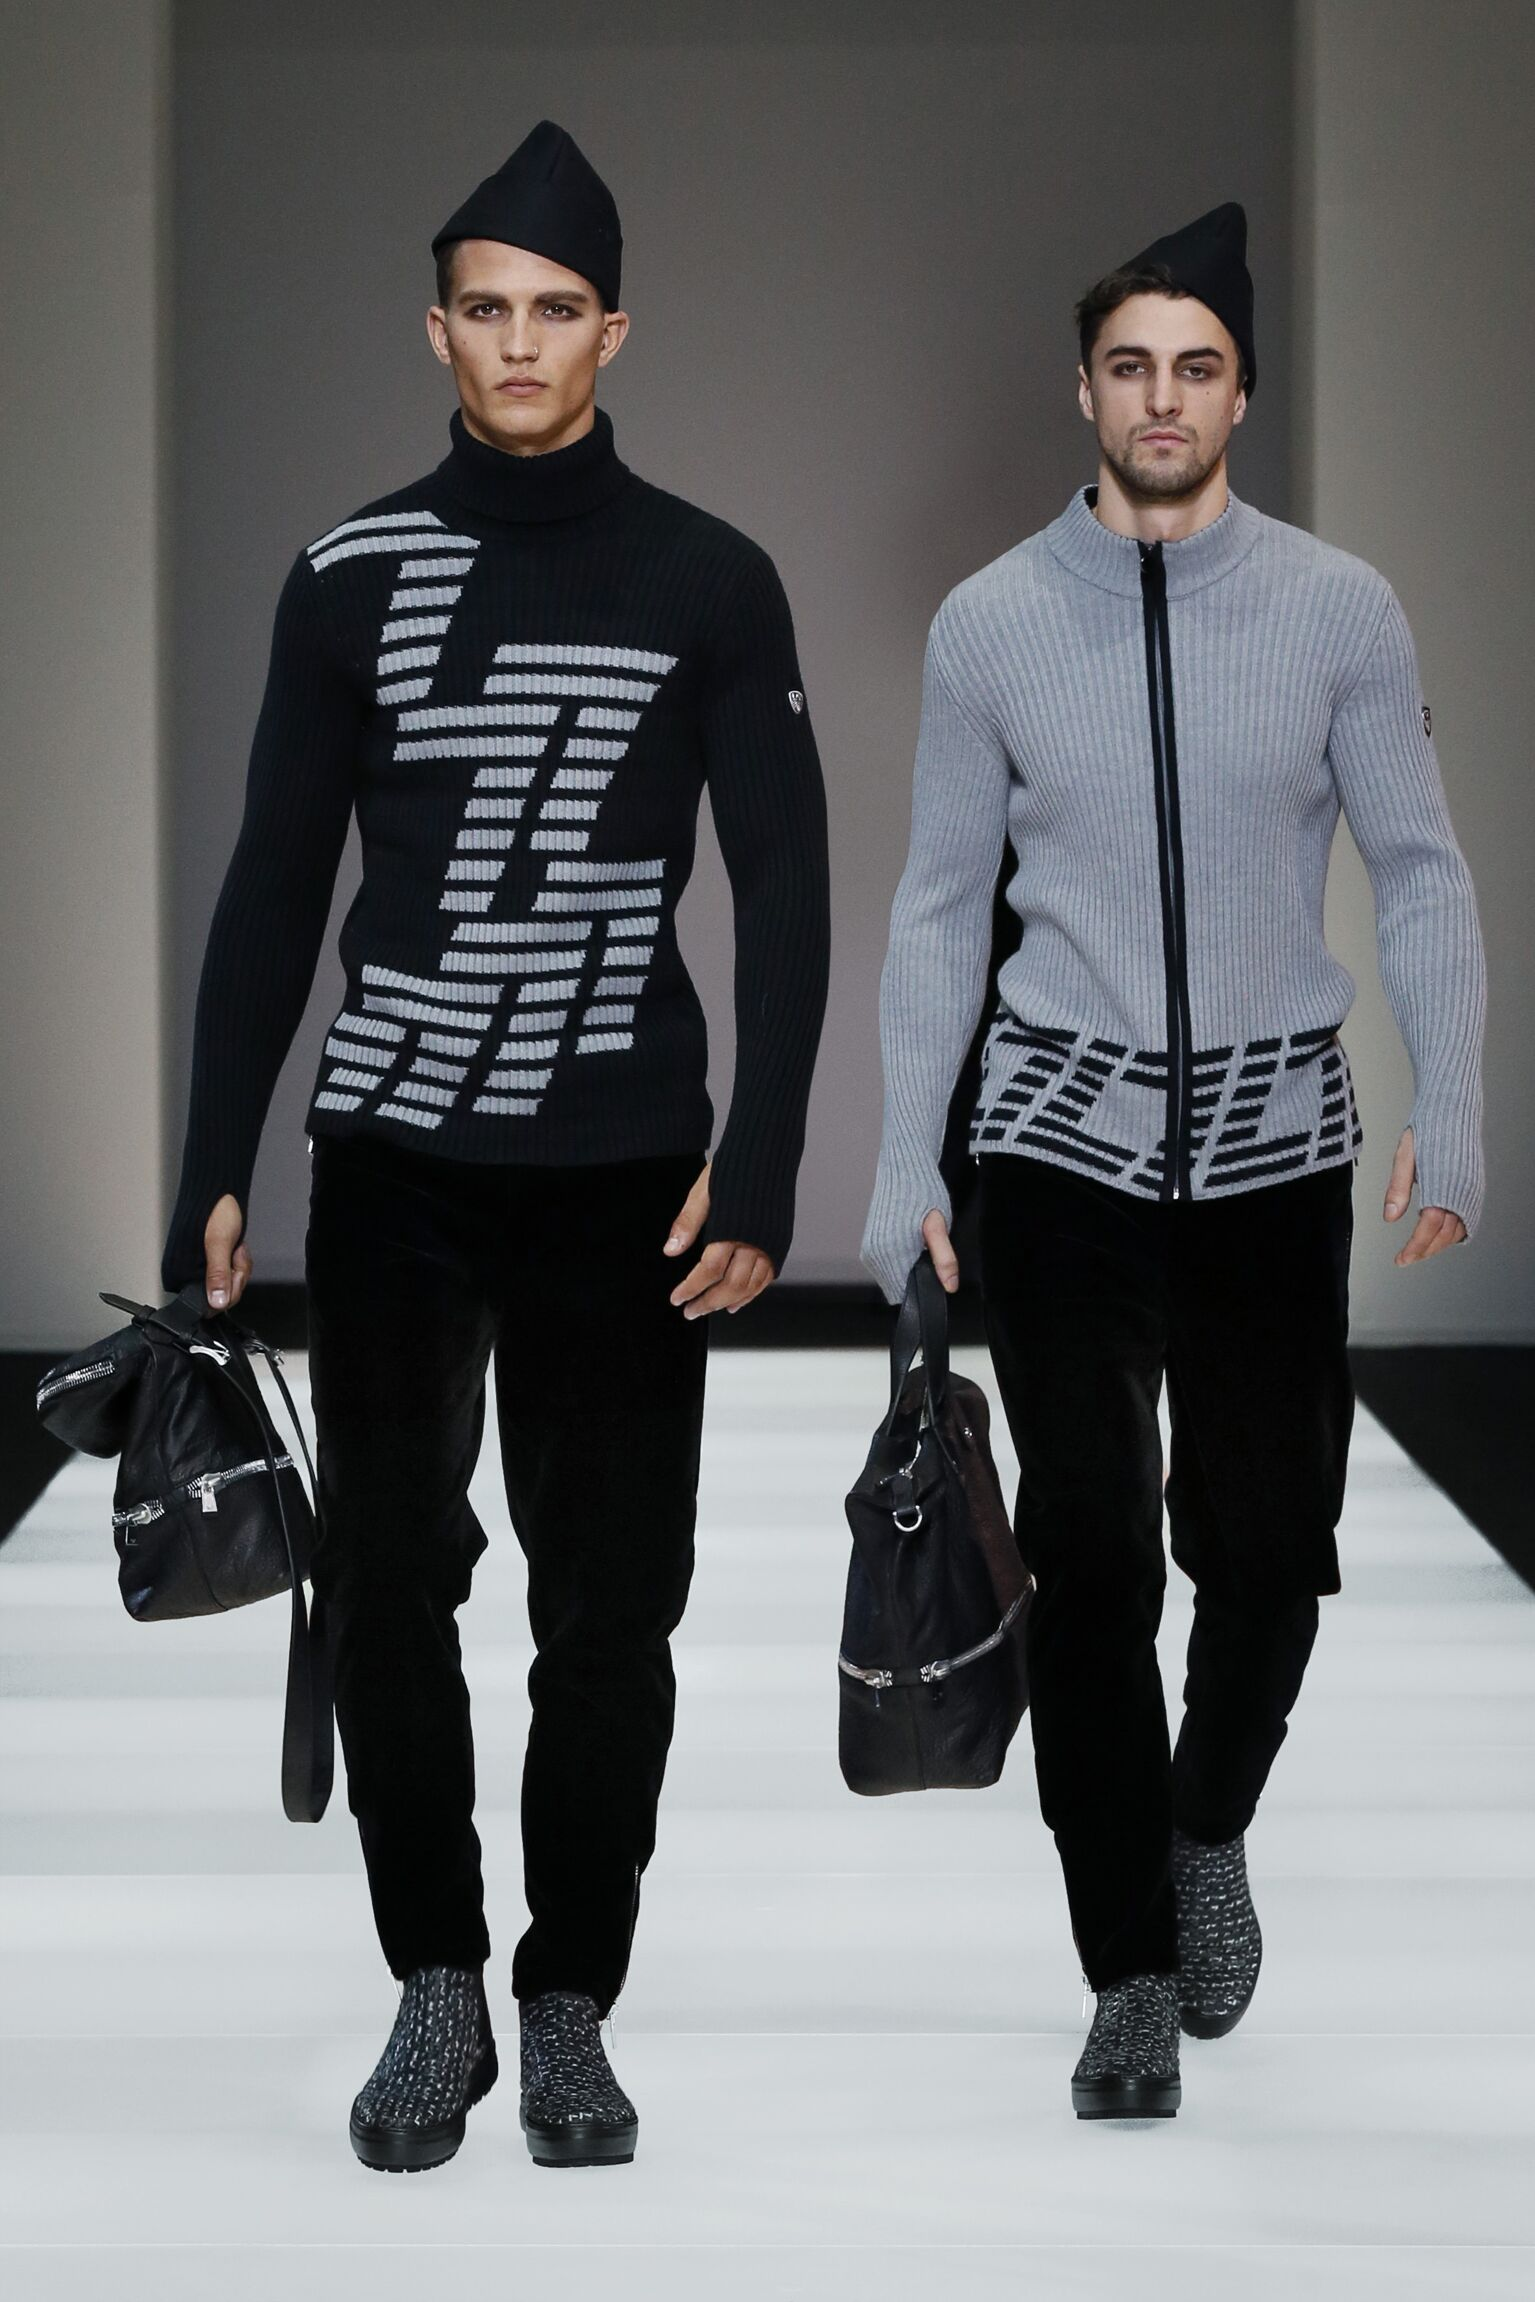 Runway Emporio Armani Fall Winter 2015 16 Men's Collection Milano Fashion Week